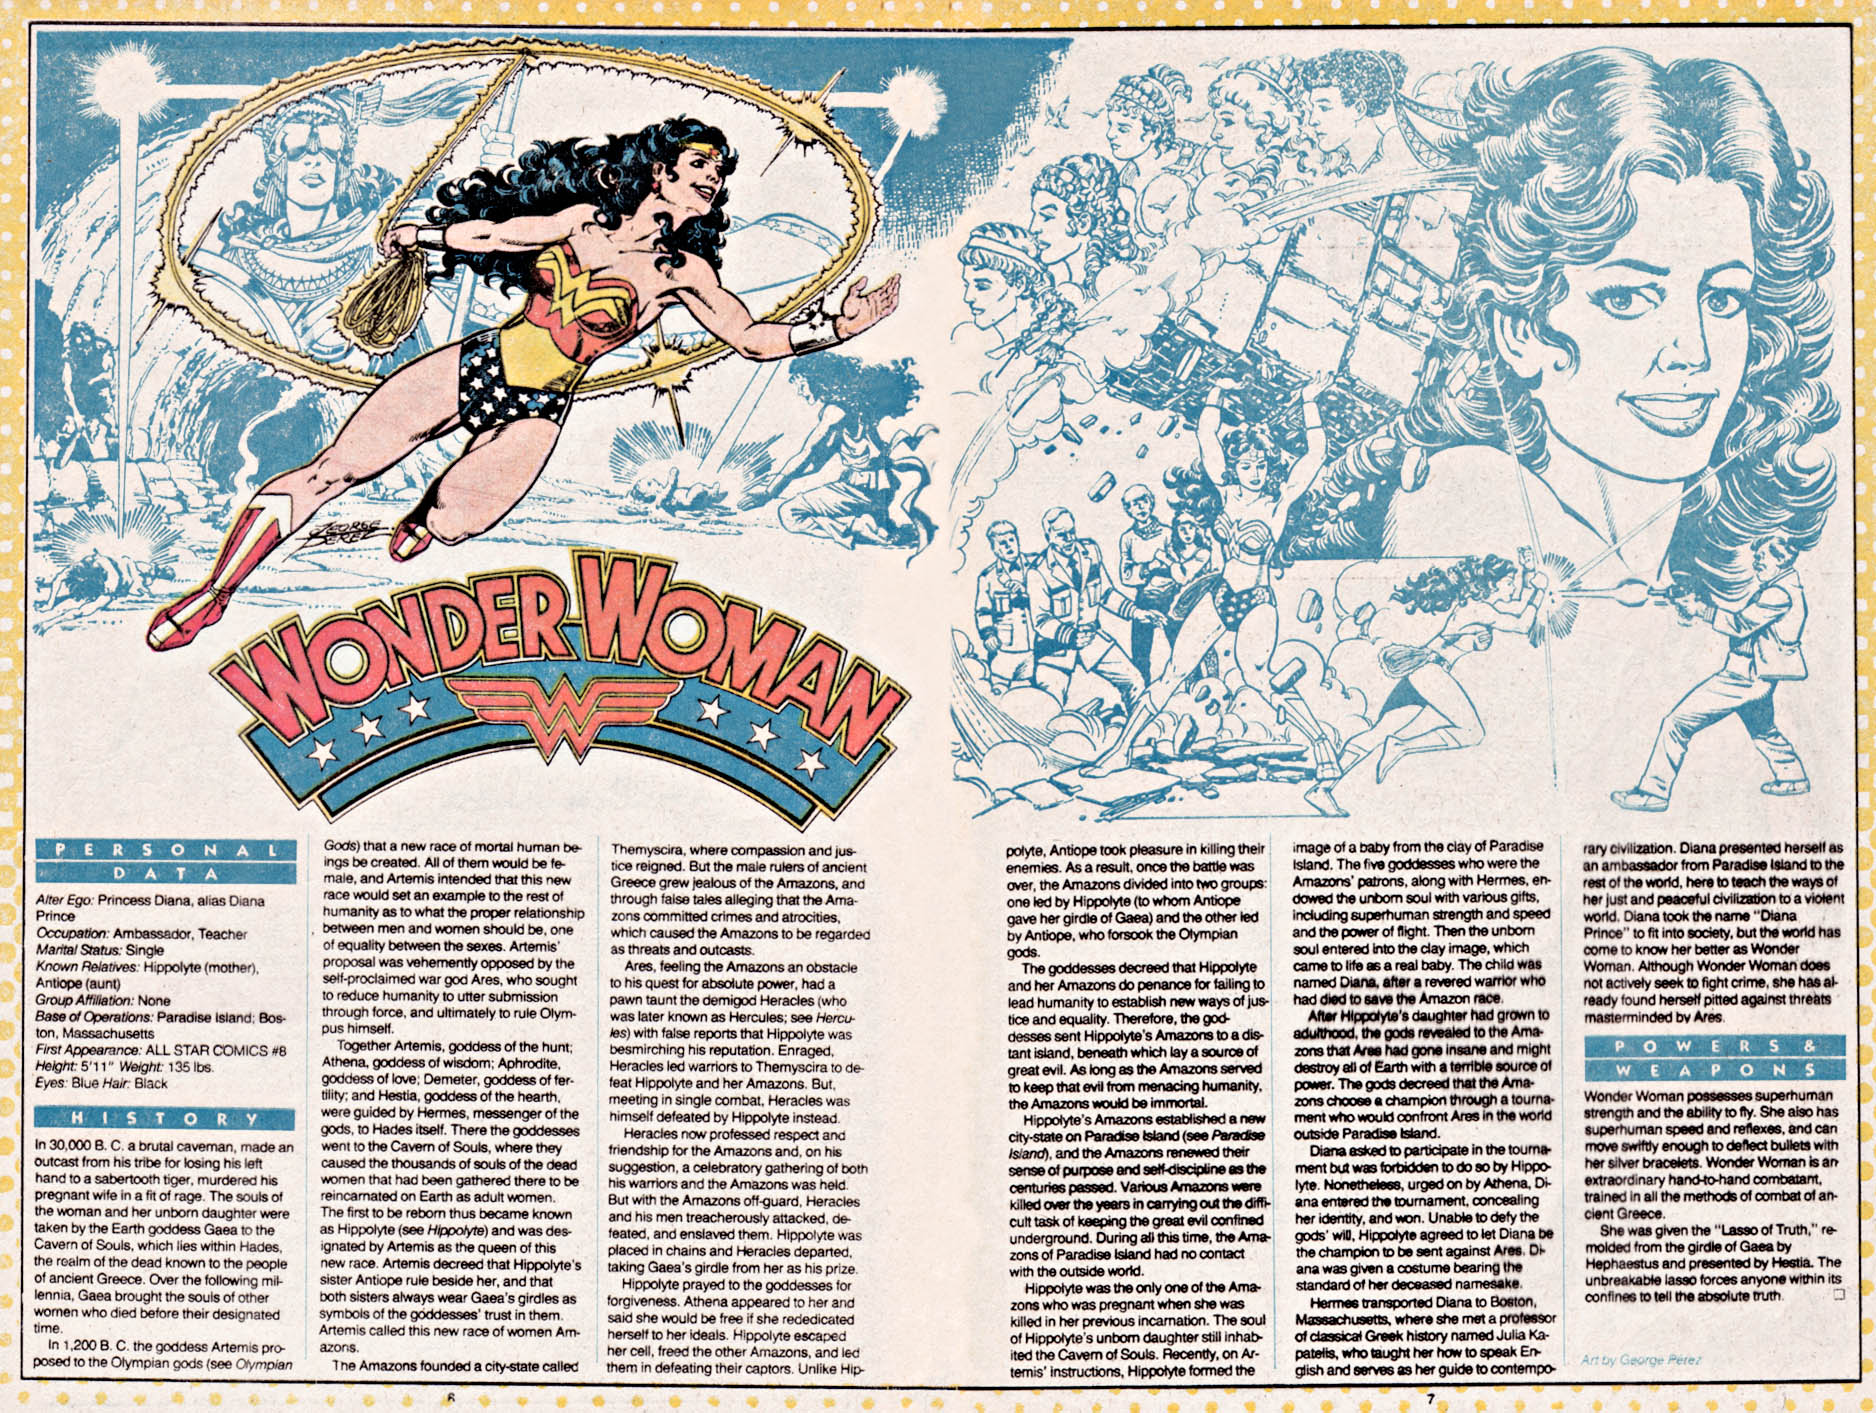 Wonder Woman by George Perez - Who's Who: The Definitive Directory of the DC Universe #26